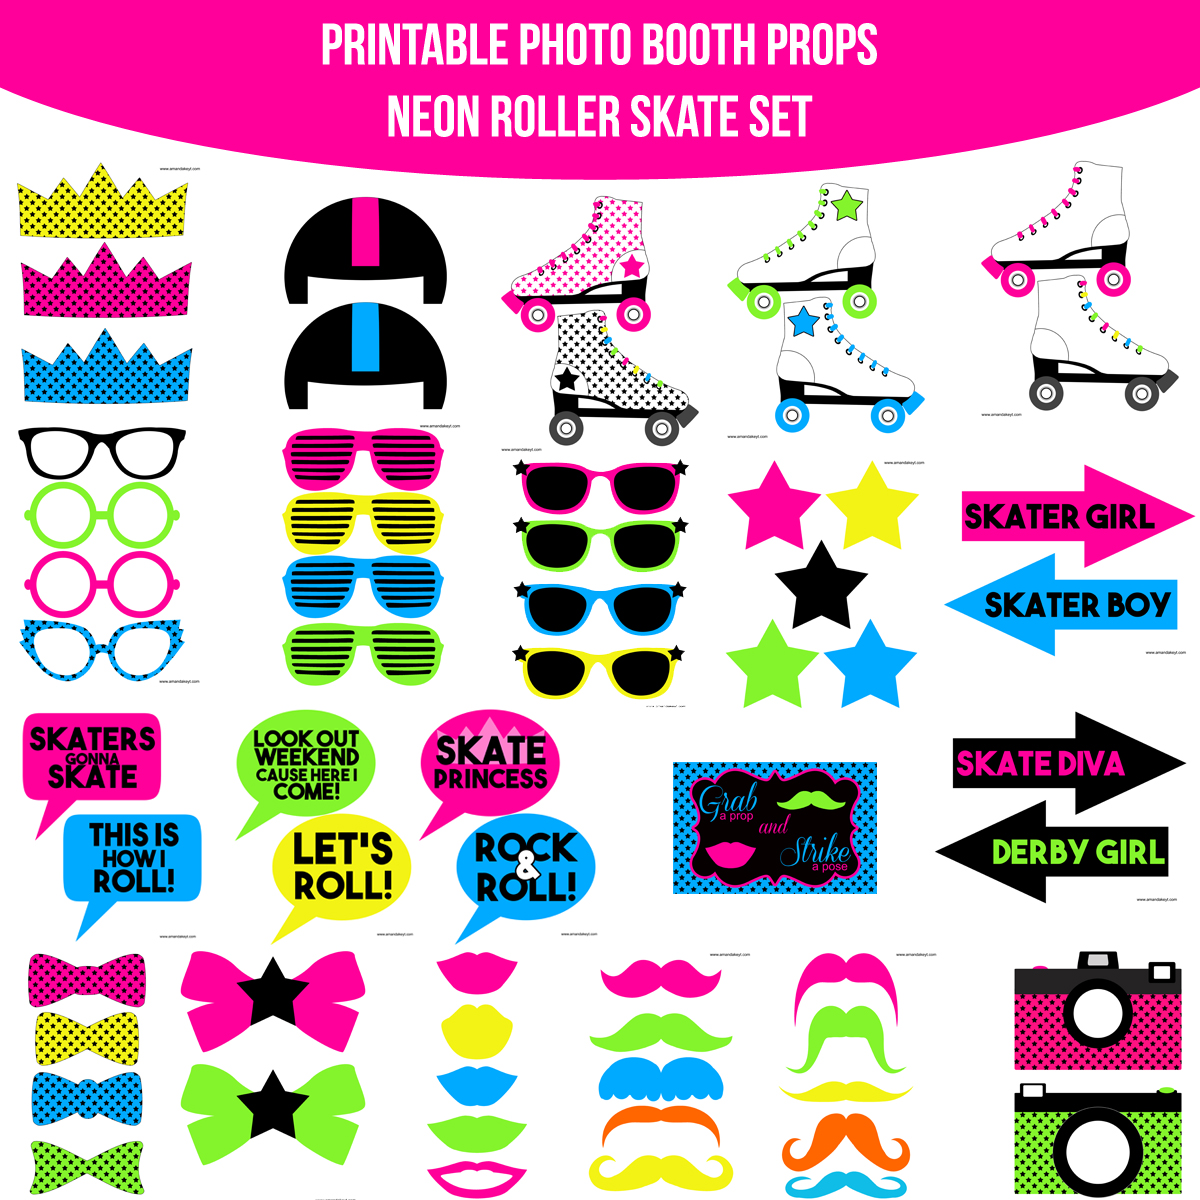 See the Set - To View The Whole Neon Roller Skate Printable Photo Booth Prop Set Click Here